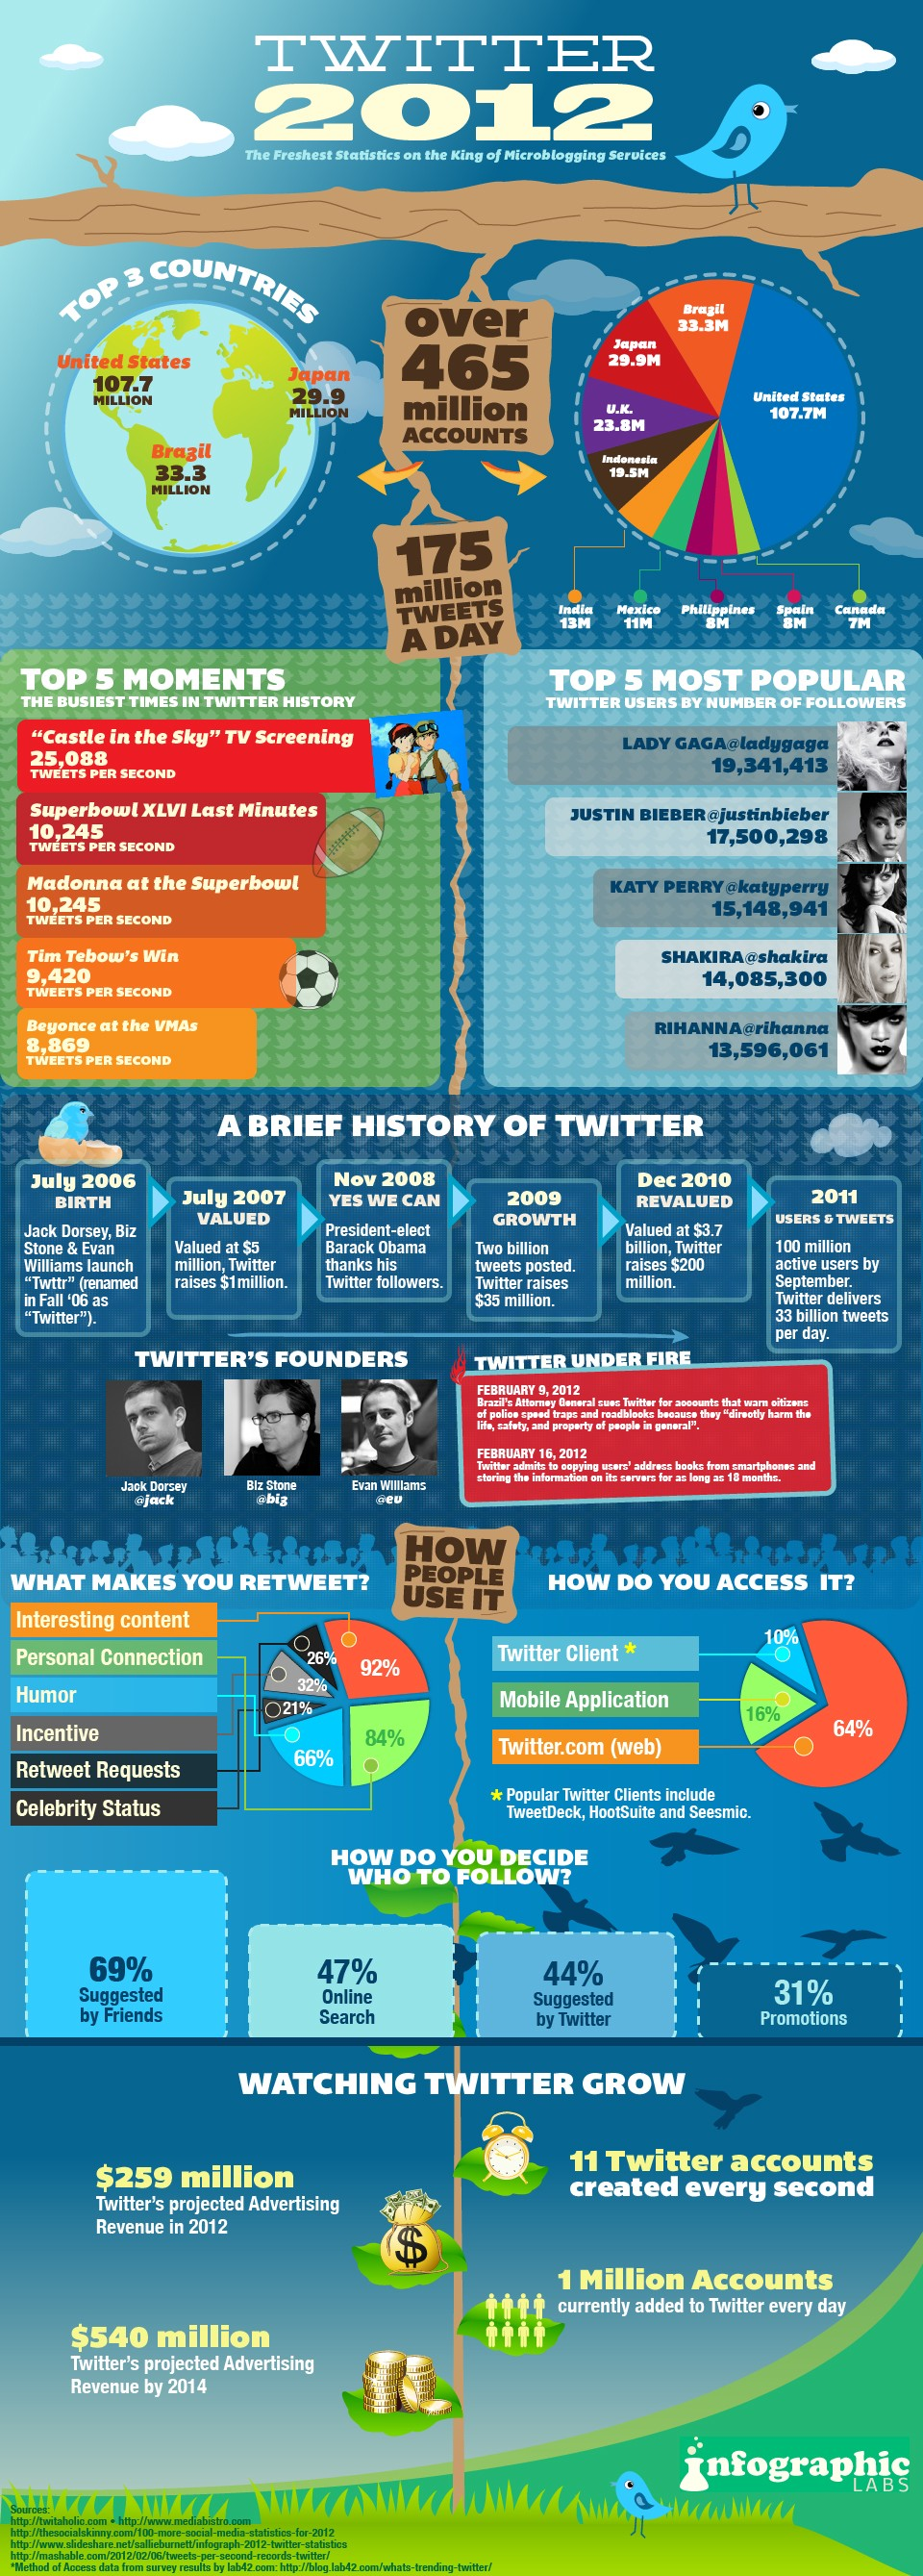 twitter-growth-infographic